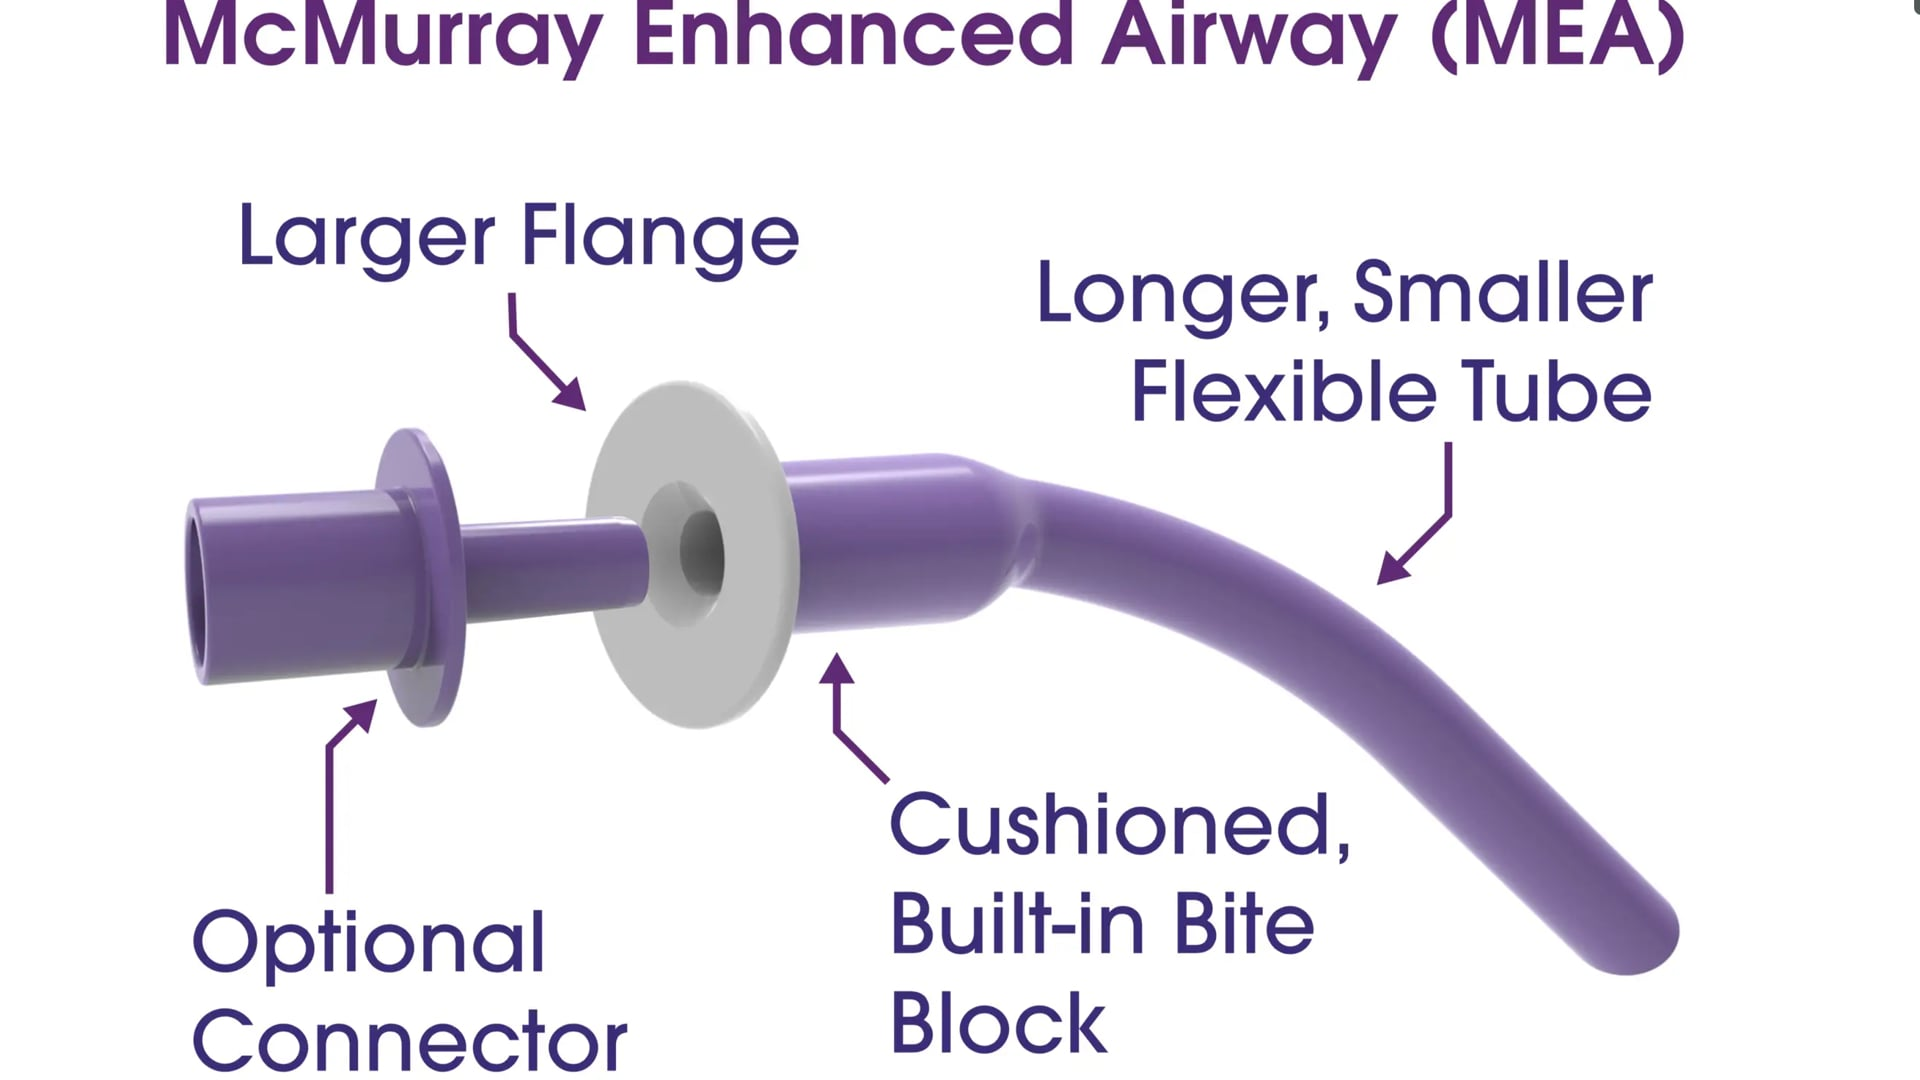 McMurray Enhanced Airway (MEA) Instructions for Use Video